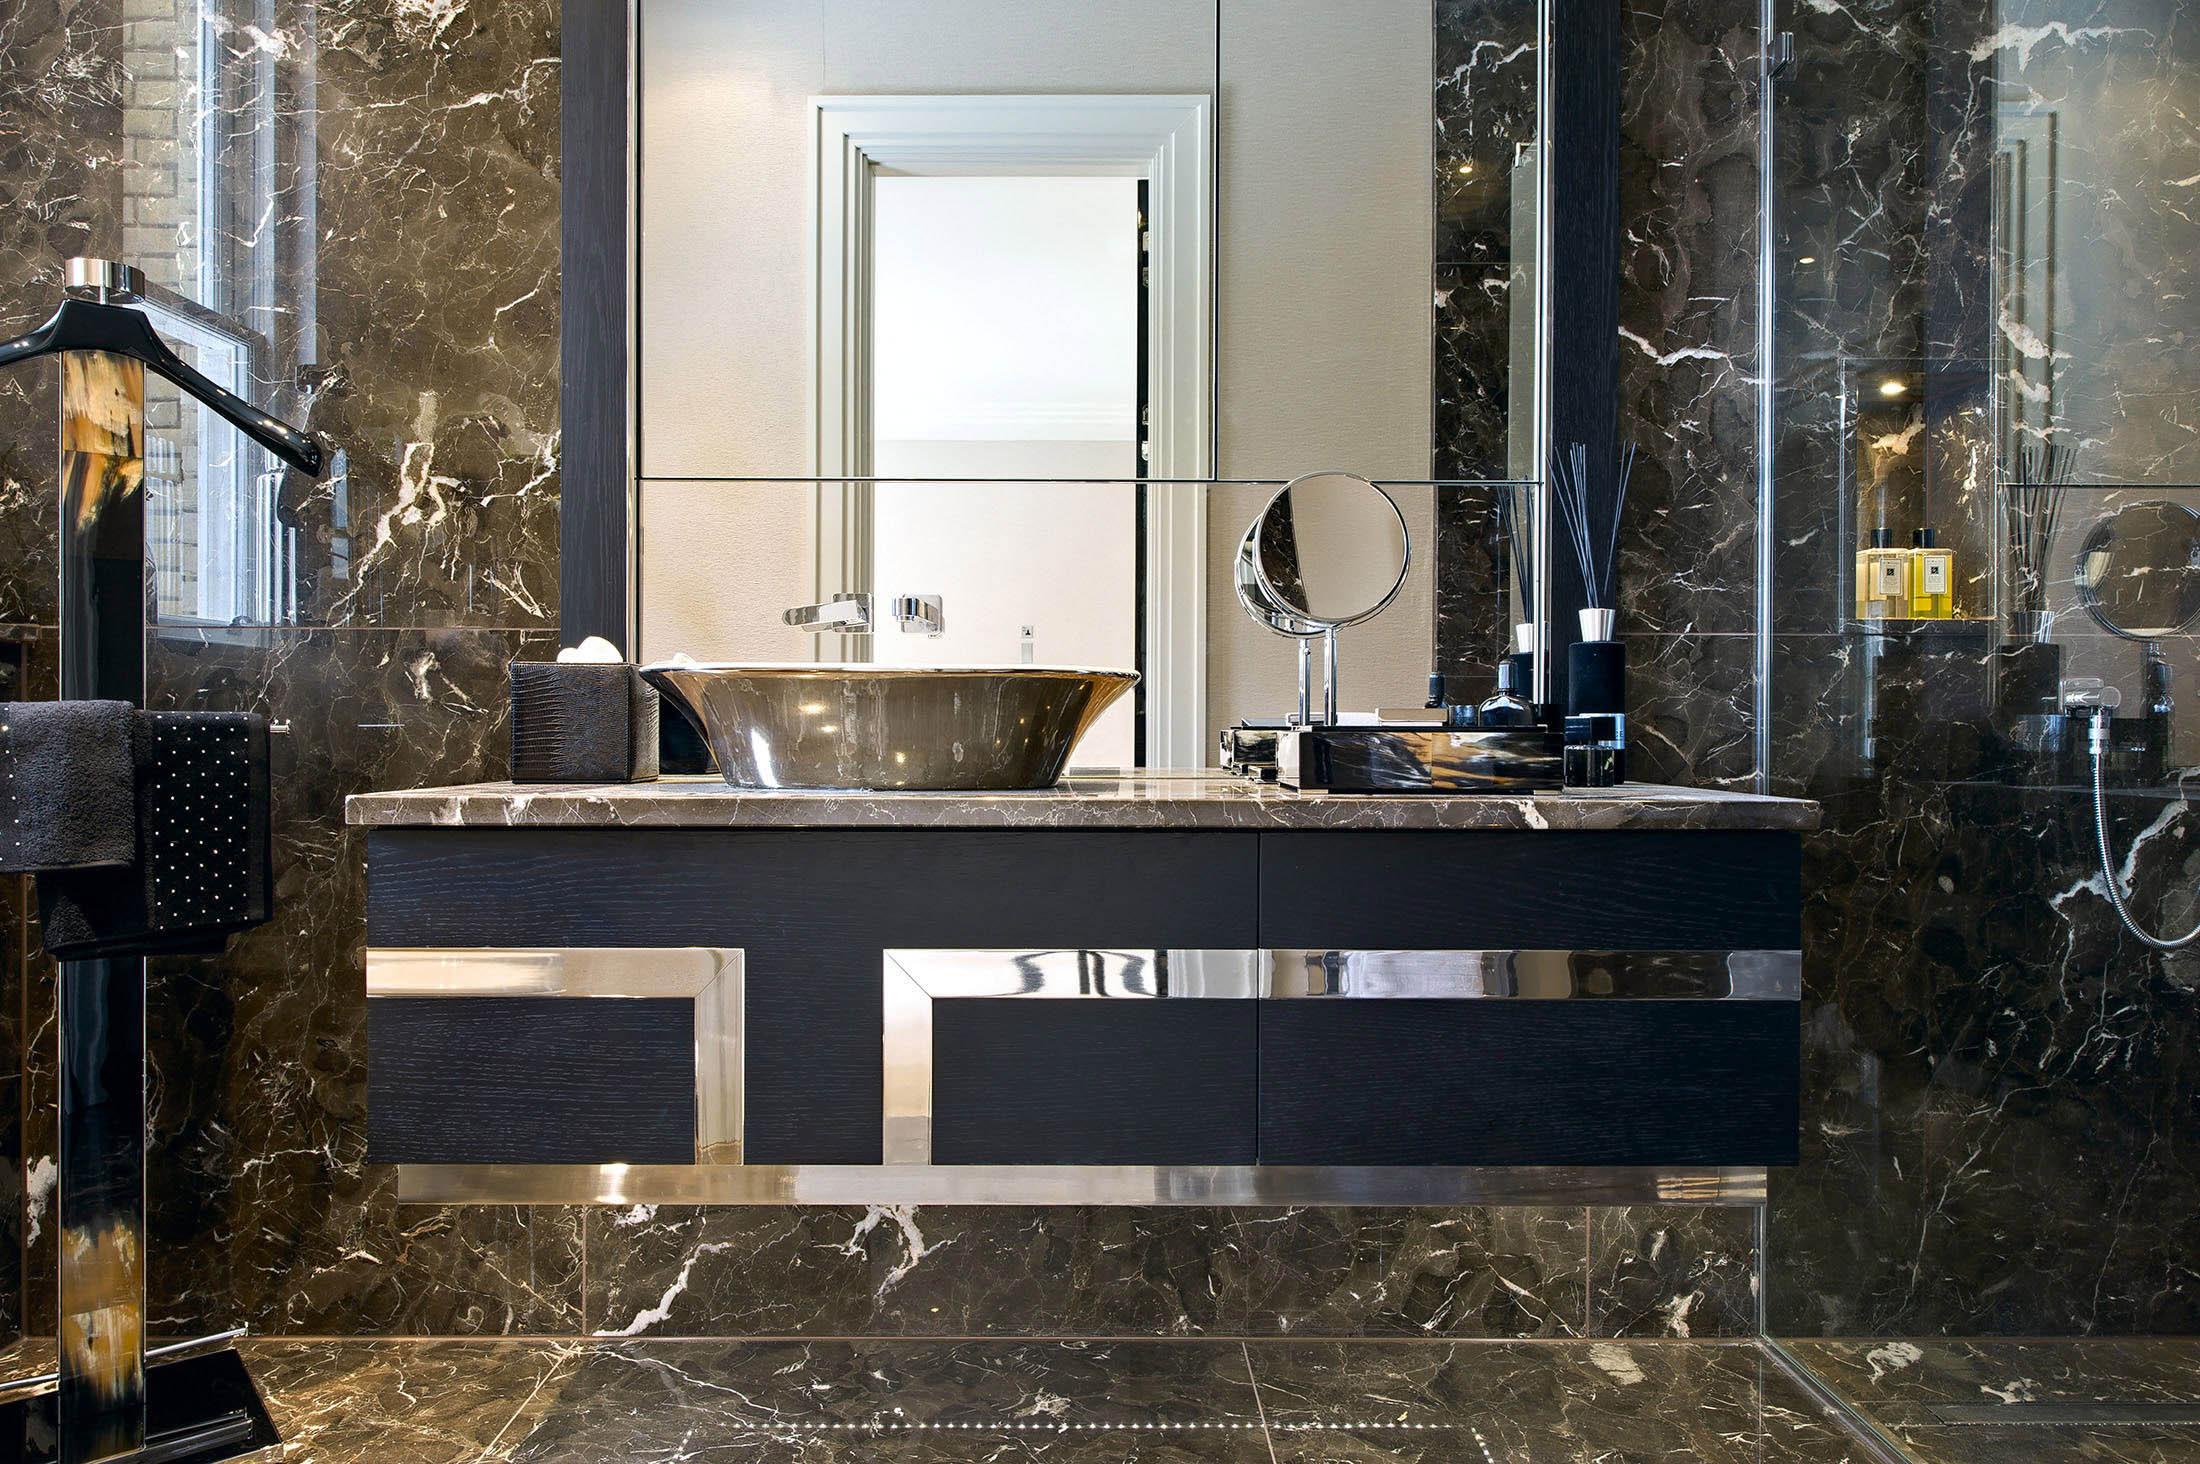 bespoke furniture design surrey heath bathroom 2014 ID&A awards finalist